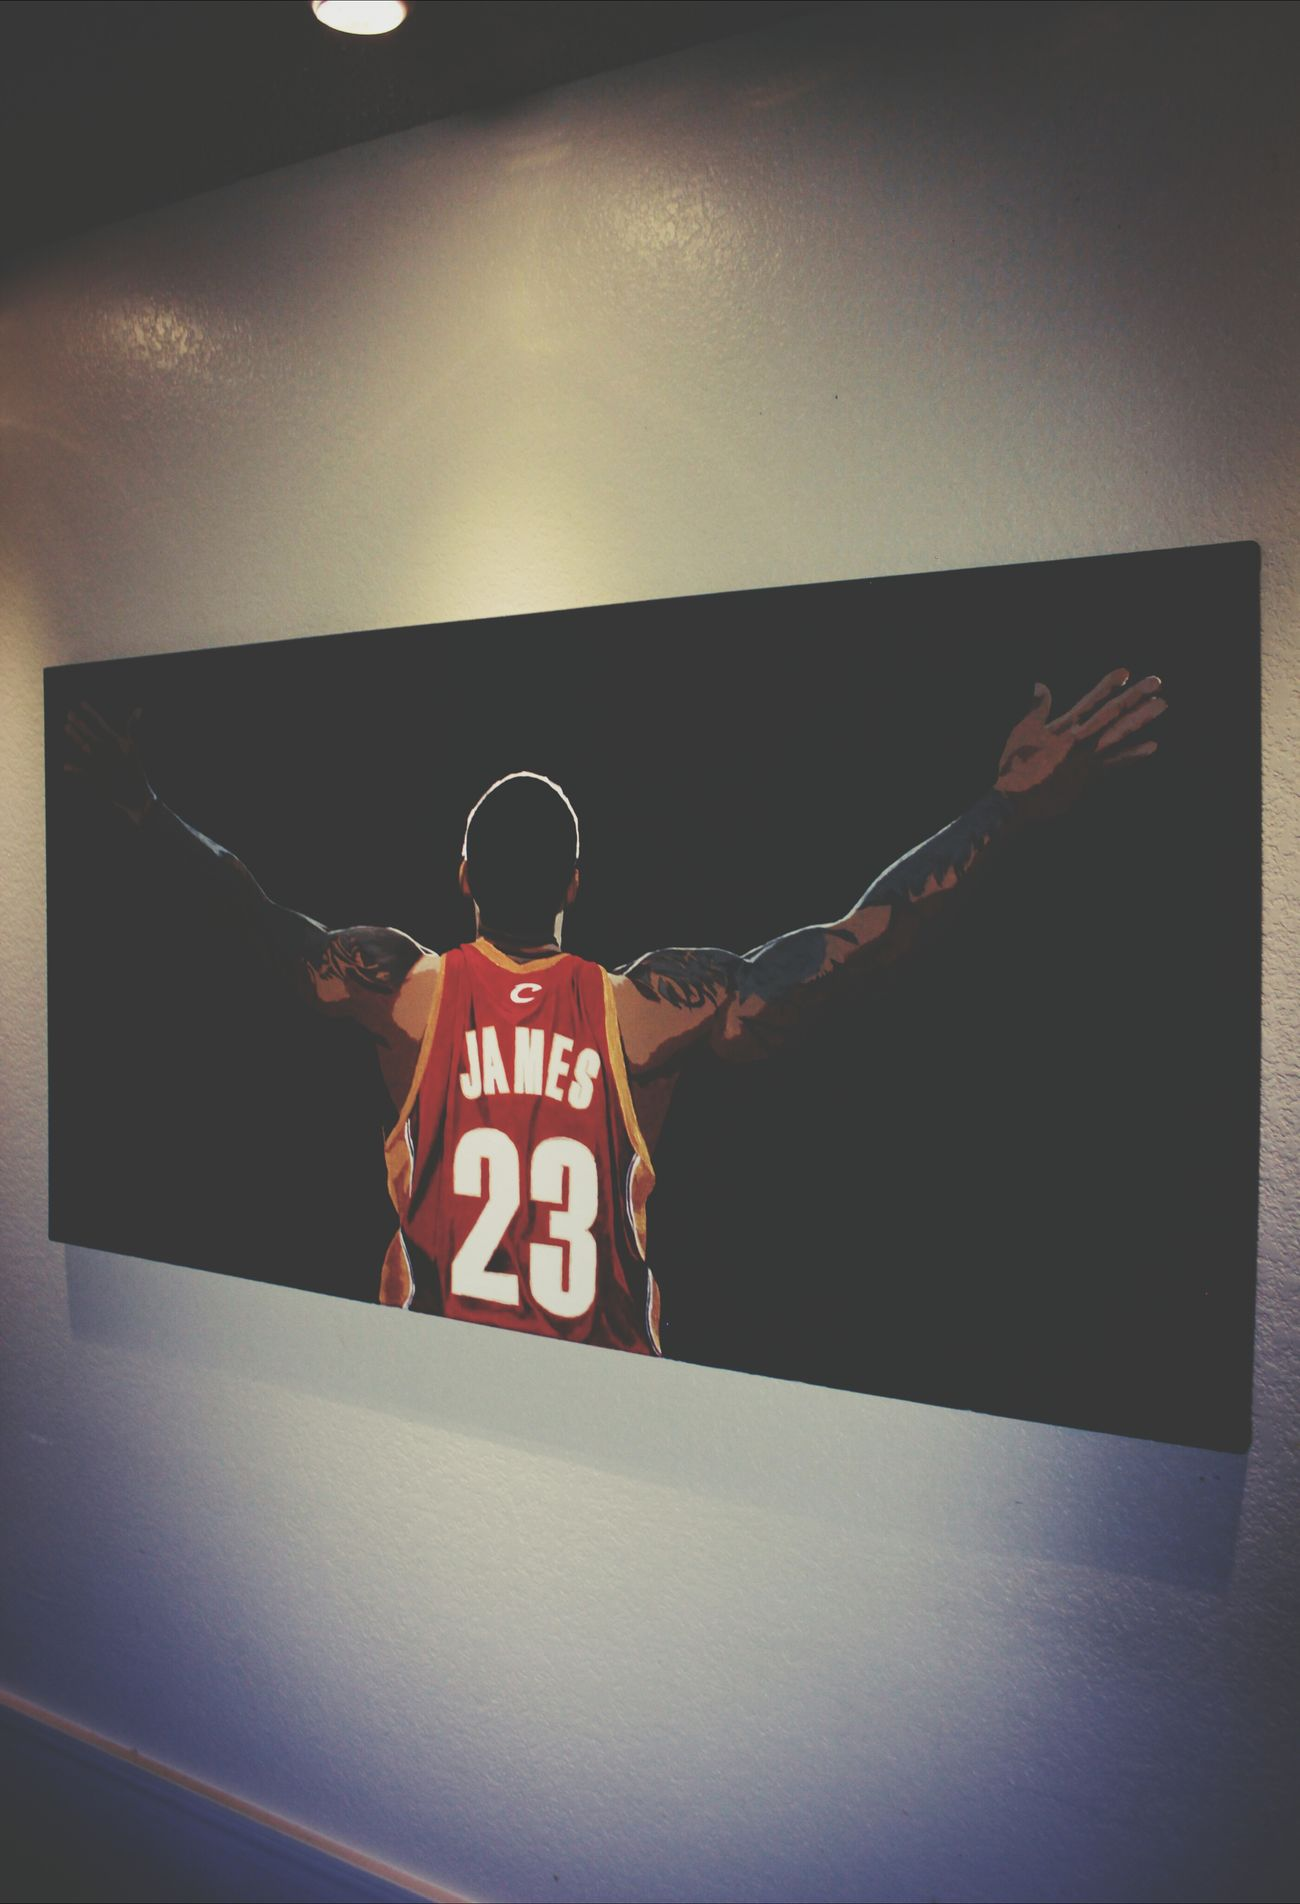 Painting LeBron James on a Tuesday www.raytennyson.com Lebron James Art NBA RayTennyson